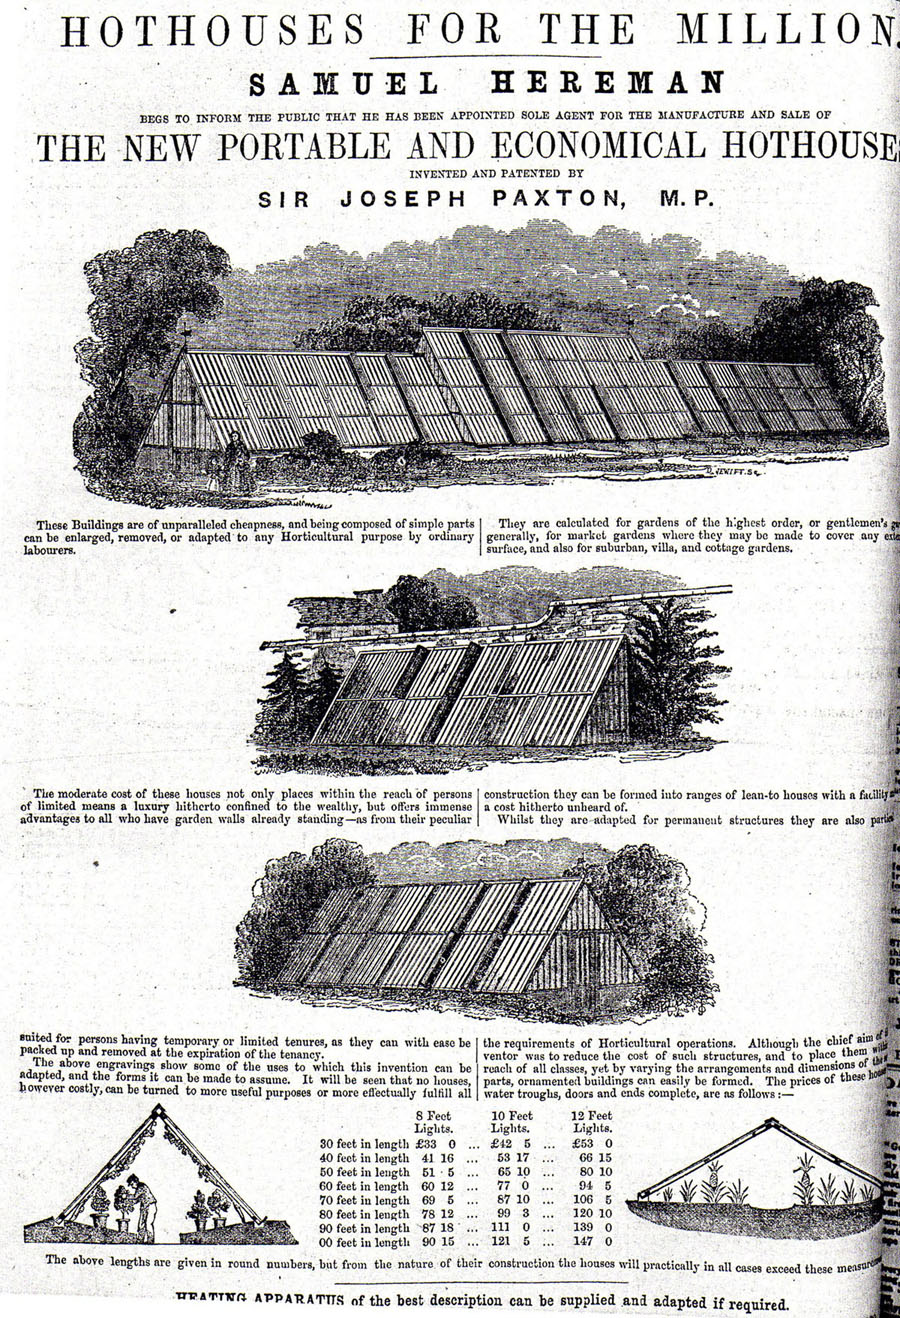 ad in 1860 issue of Gardeners' Chronicle